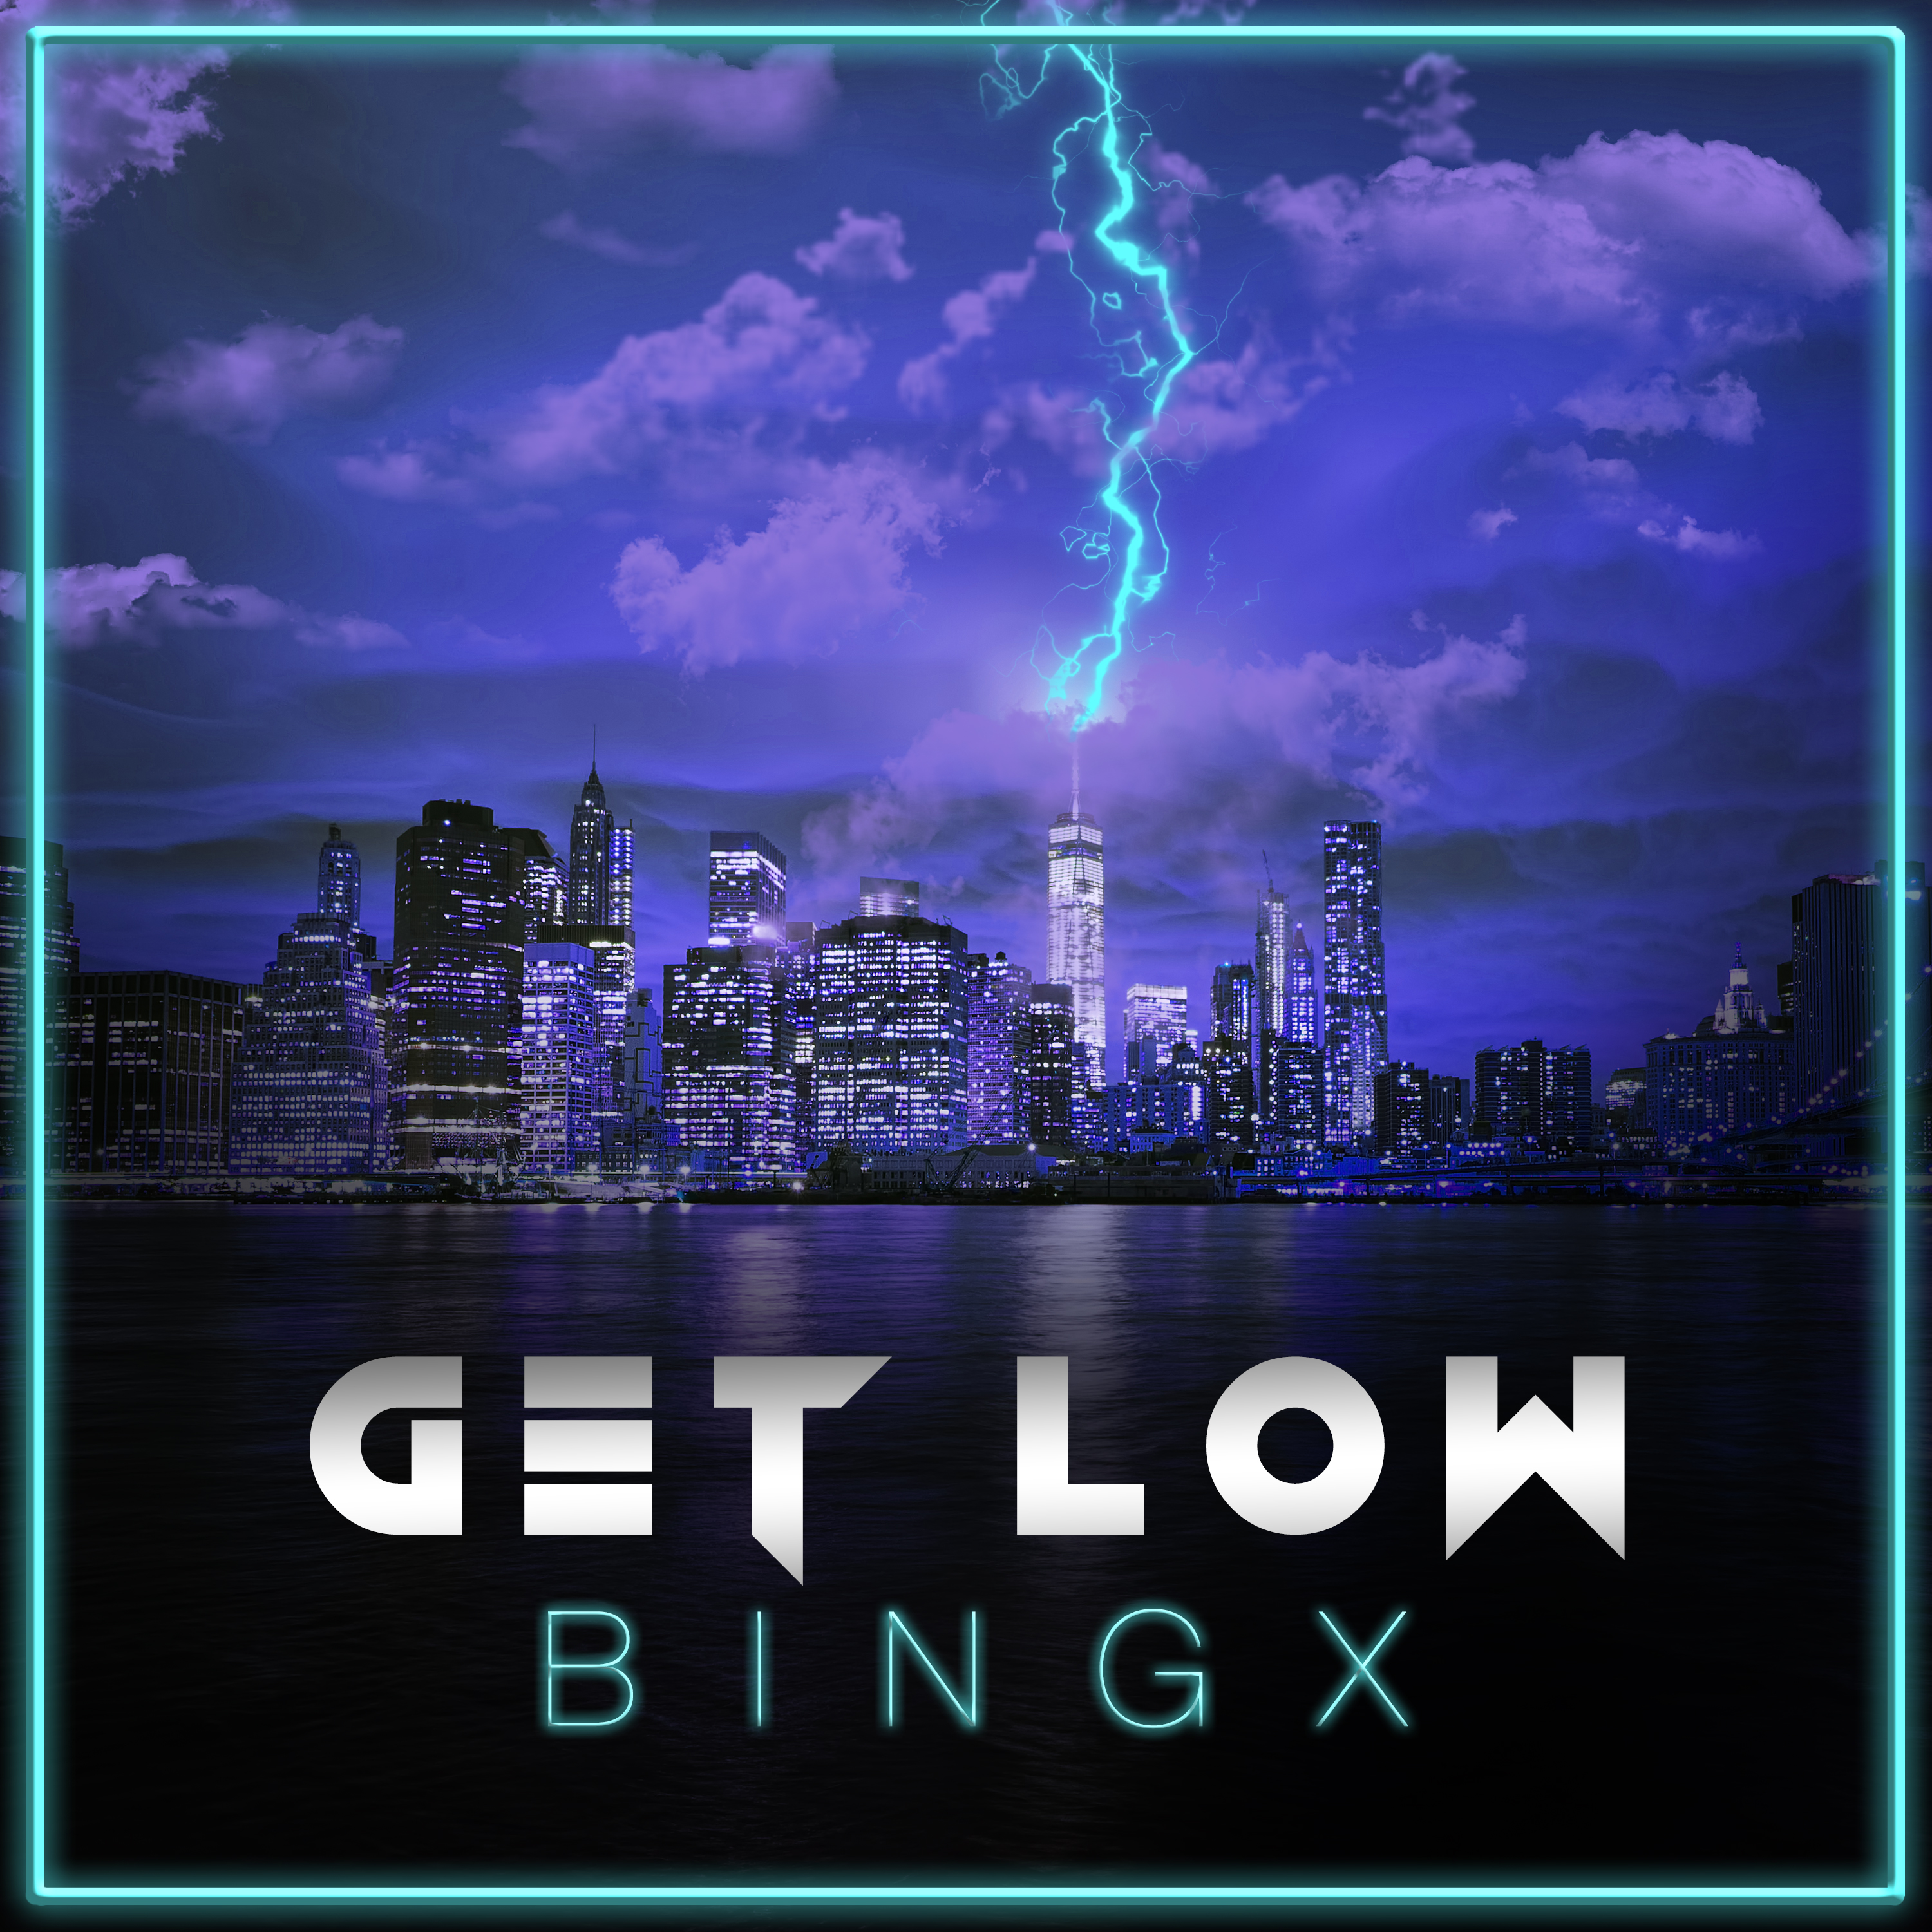 Get Low Single Cover 1-2